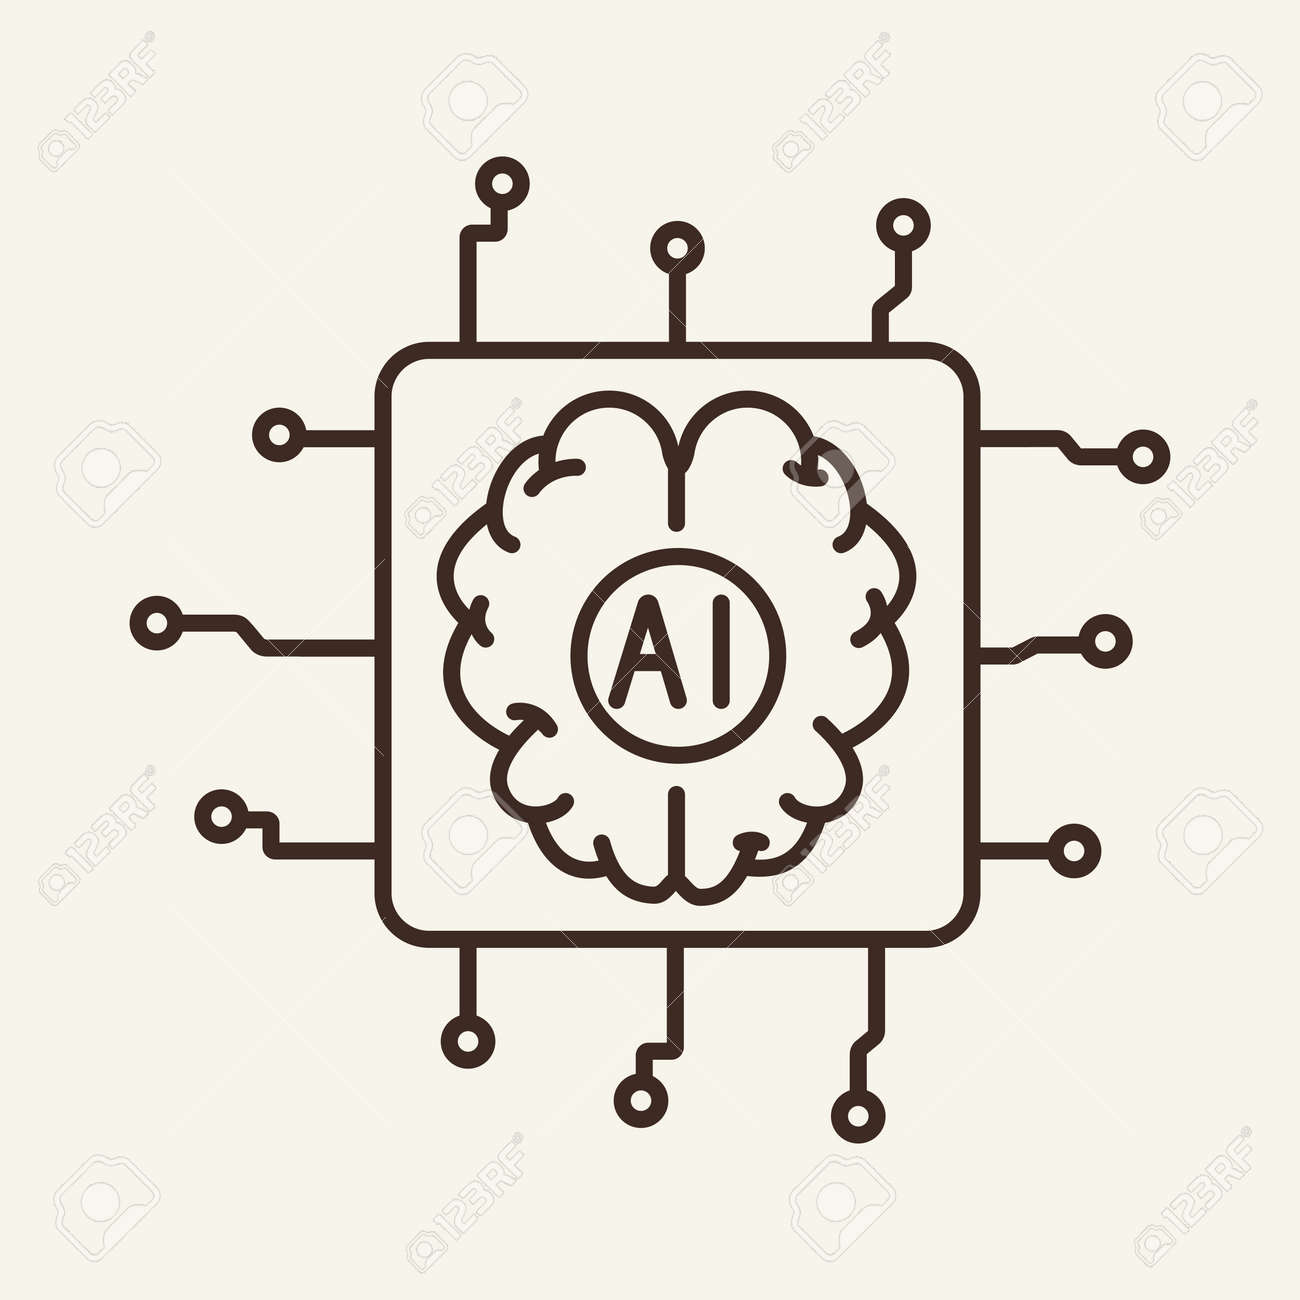 Embedded device thin line icon. Brain, chip, microchip, AI isolated outline sign. Artificial intelligence concept. Vector illustration symbol element for web design and apps - 144629553